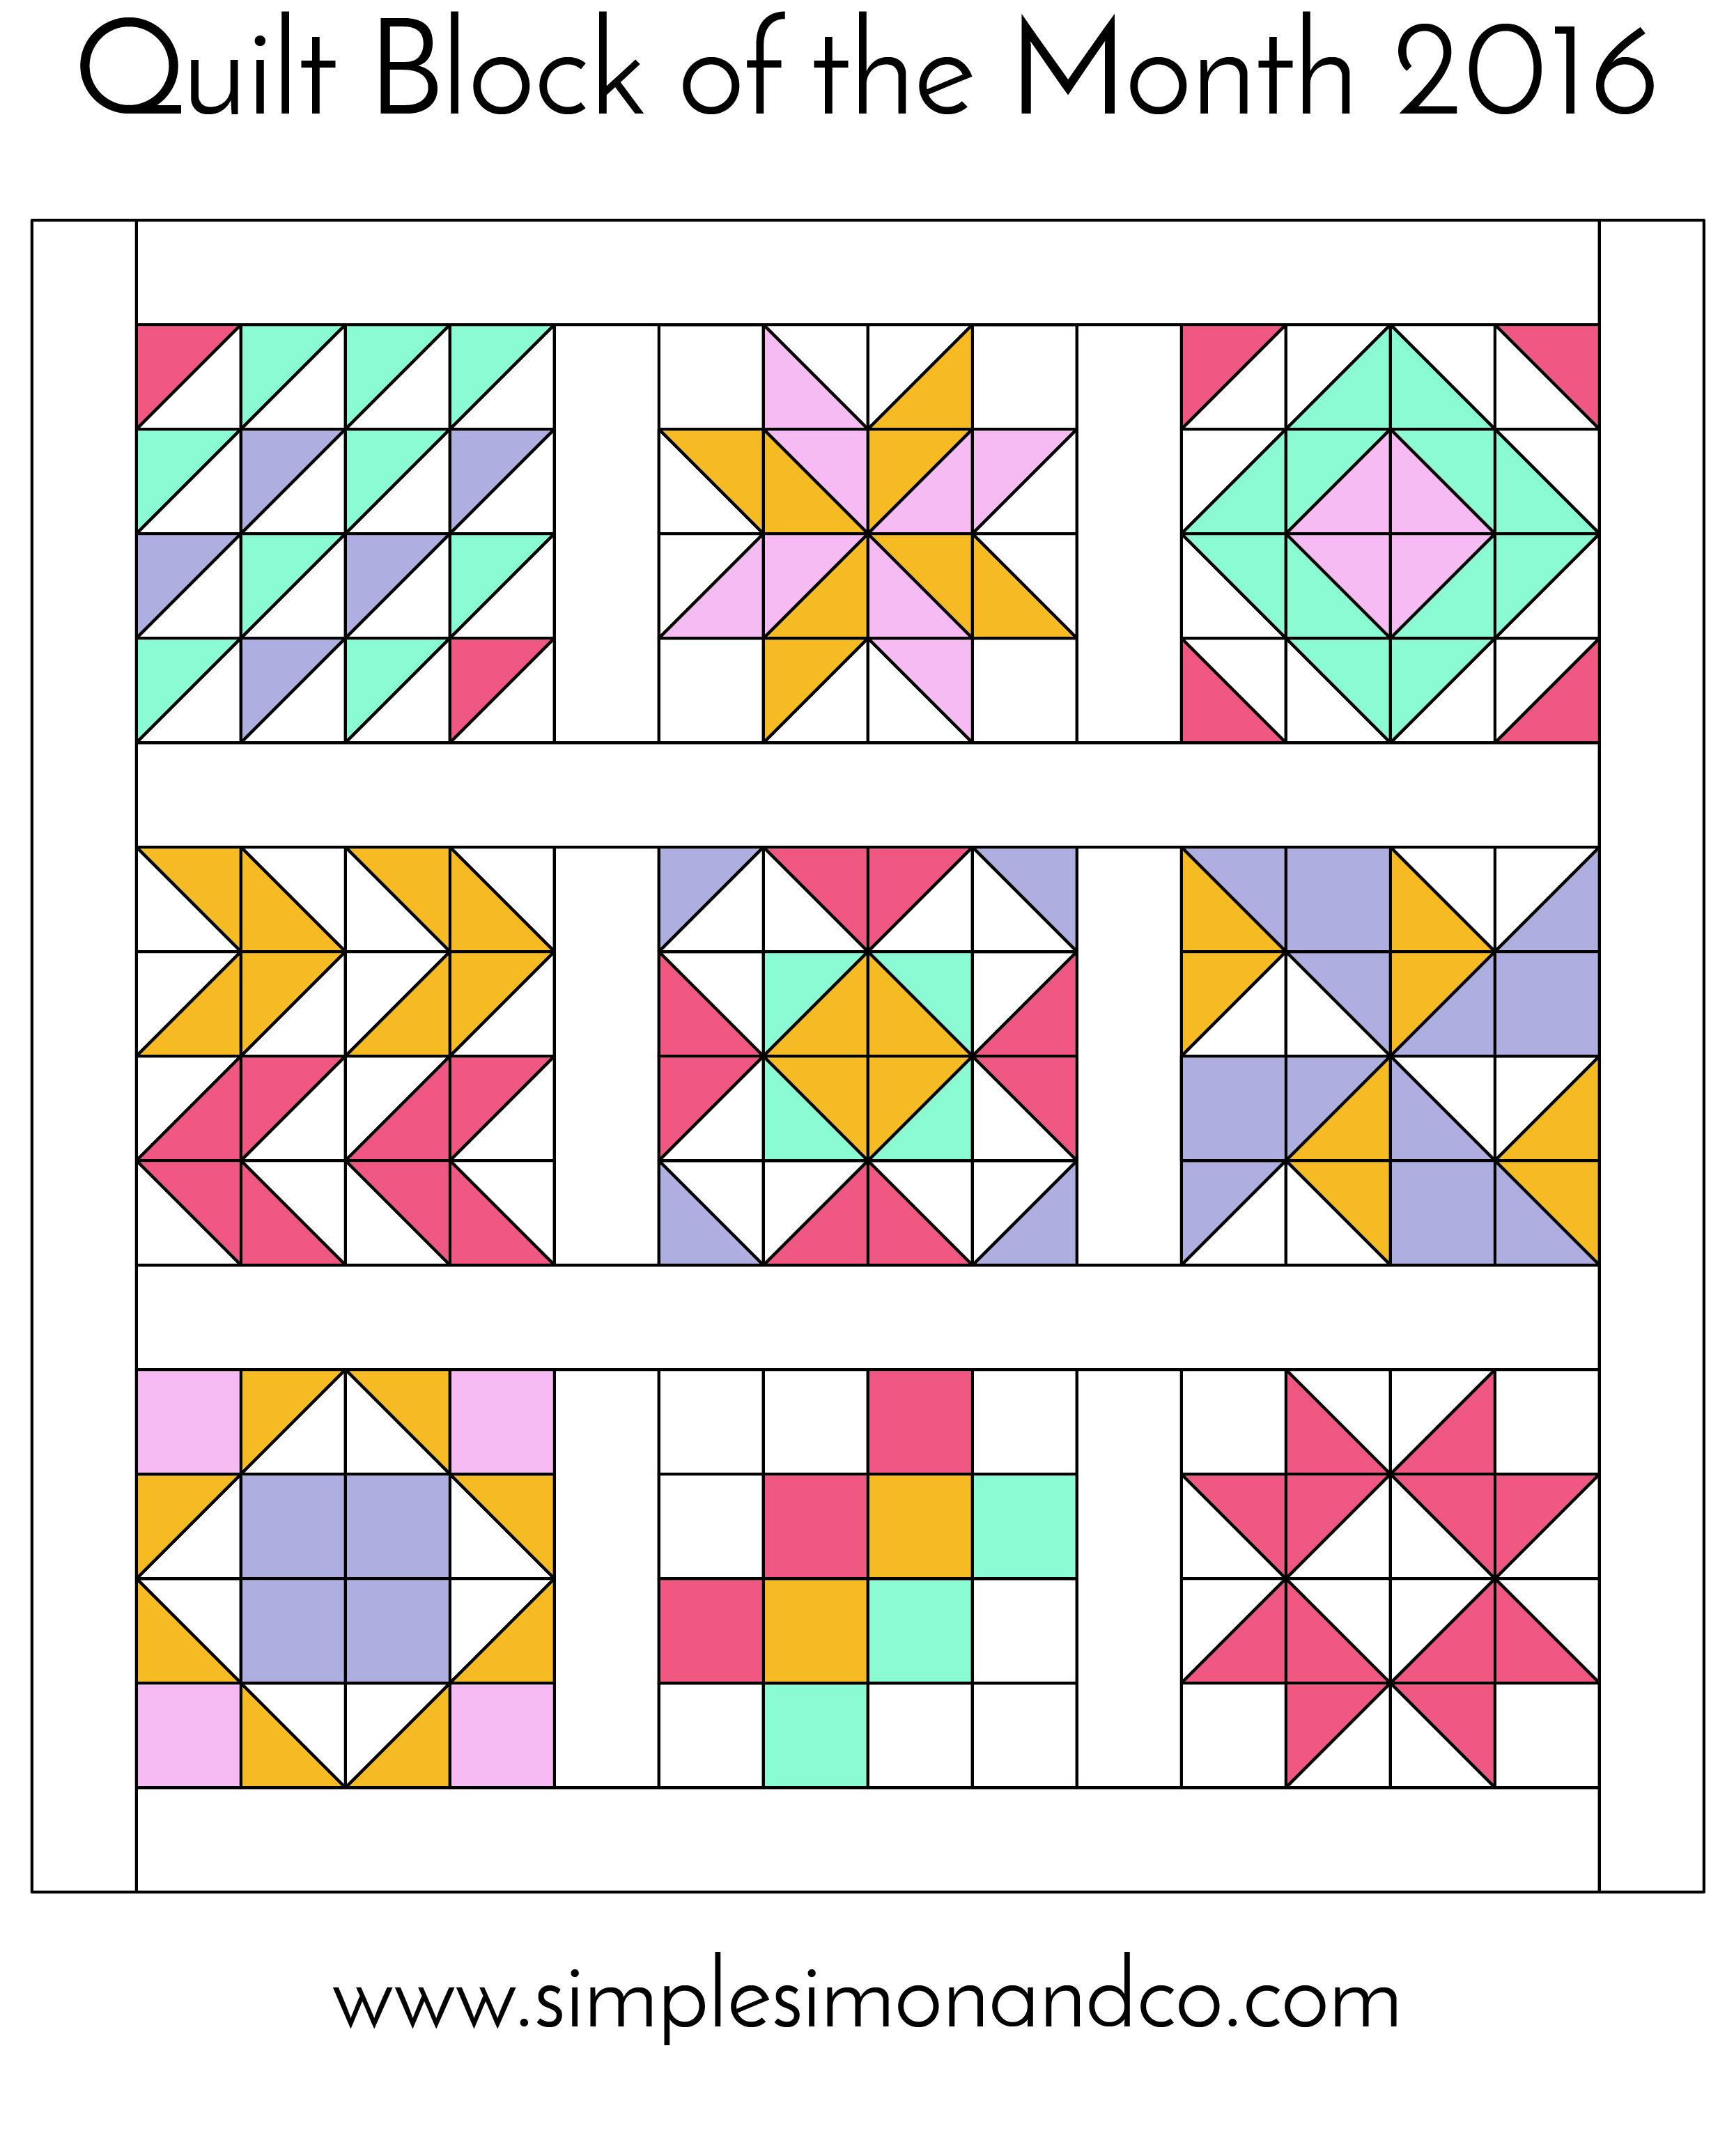 quilt-block-of-the-month-2016